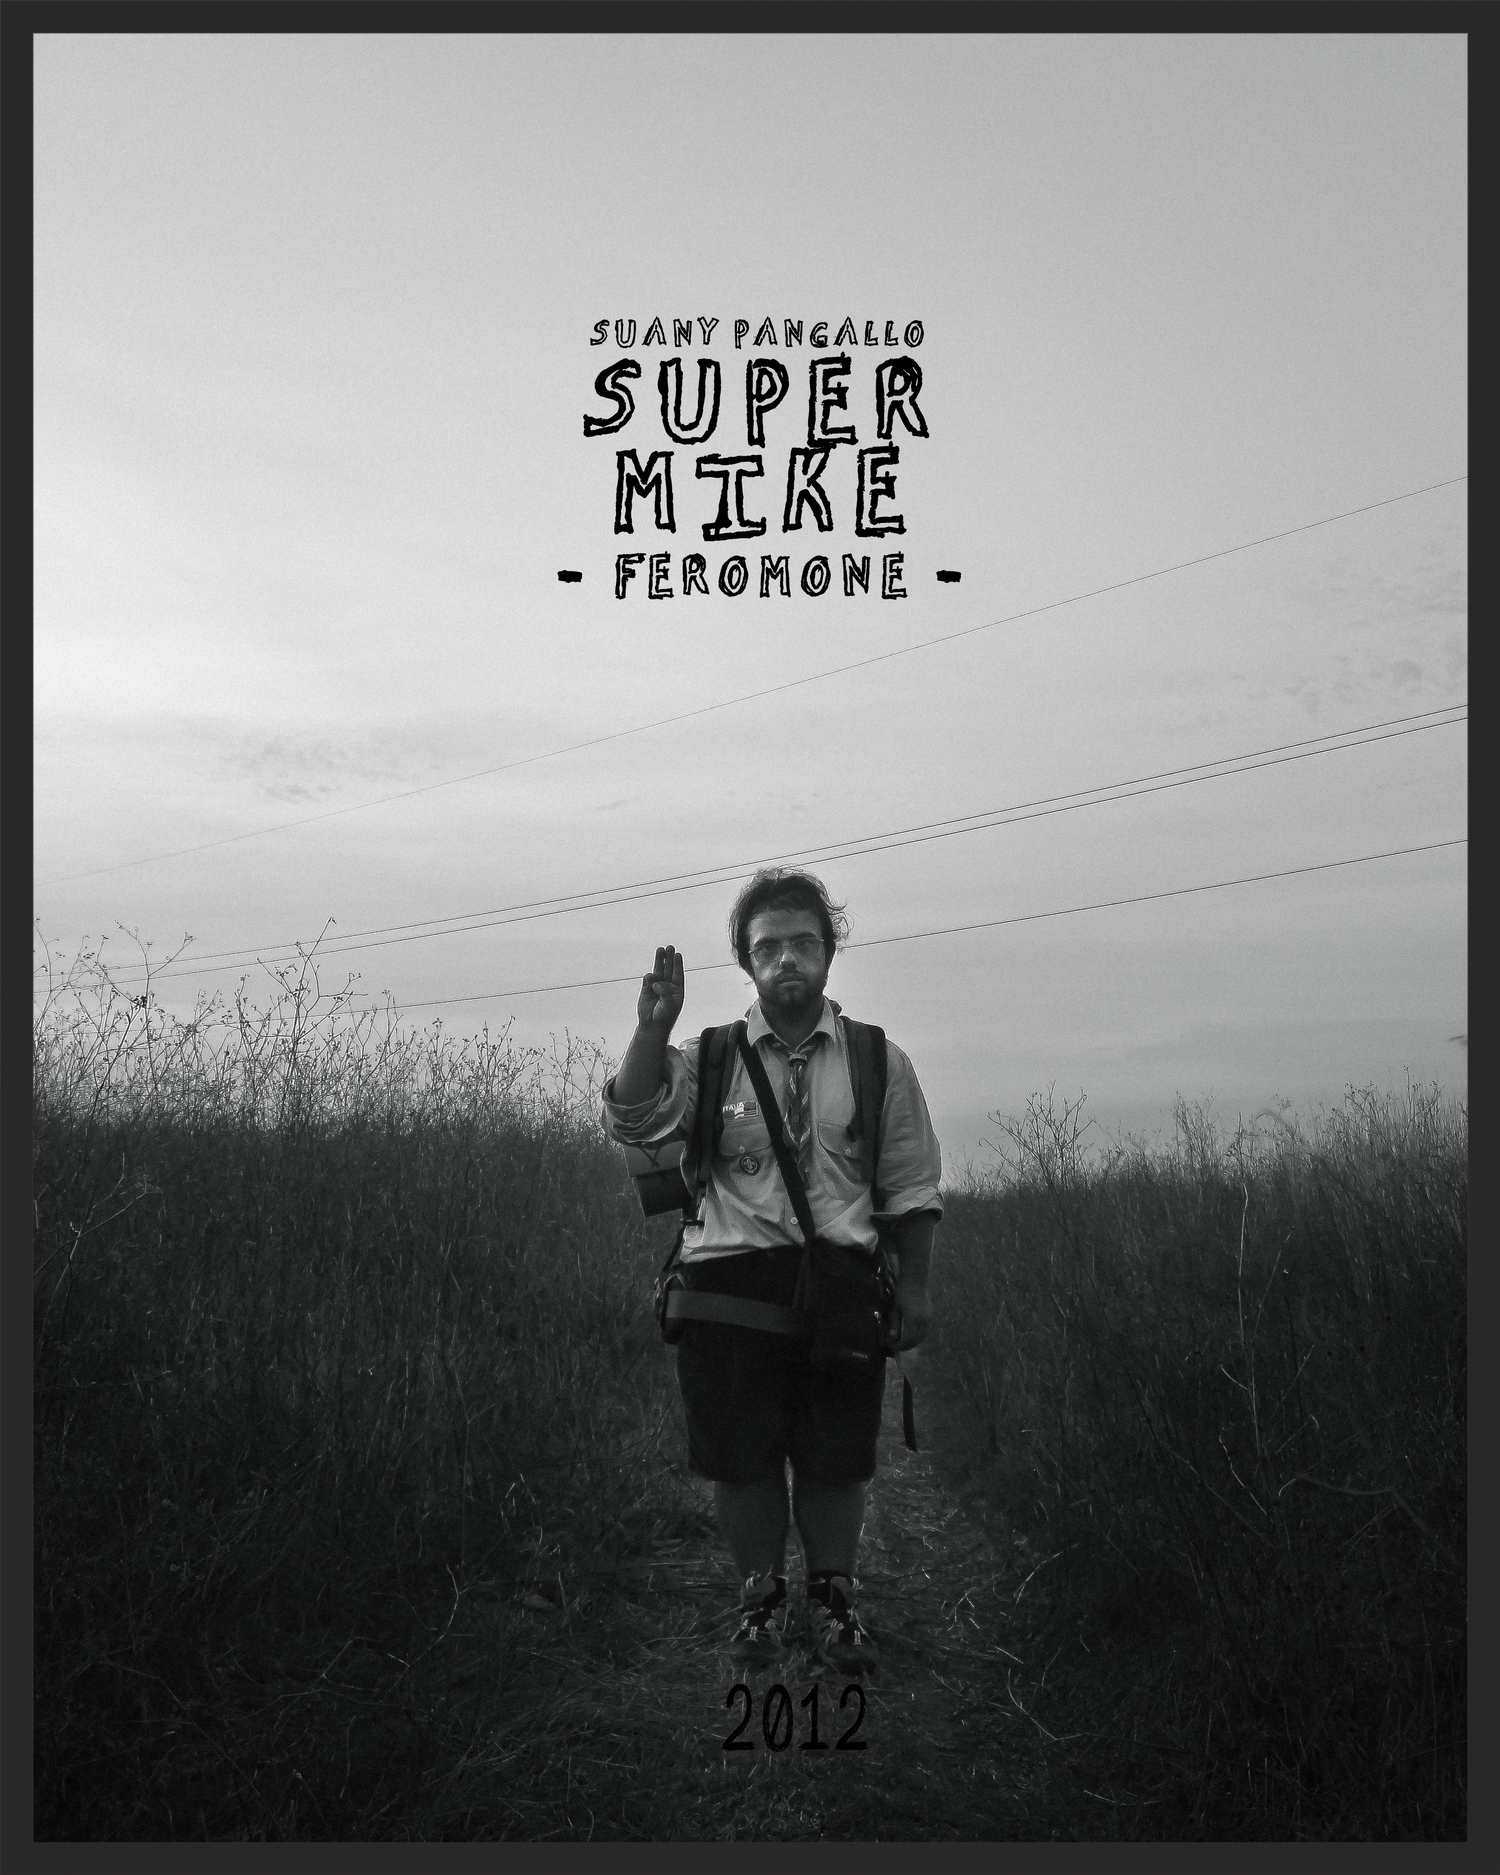 Super mike: Feromone - Official entry for the Sigur Rós Valtari mystery film competition.The story of a chase: a modern Tom Thumb with a rope instead of crumbsOfficial entry for the Sigur Rós Valtari mystery film competition. The story of a chase: a modern Tom Thumb with a rope instead of crumb